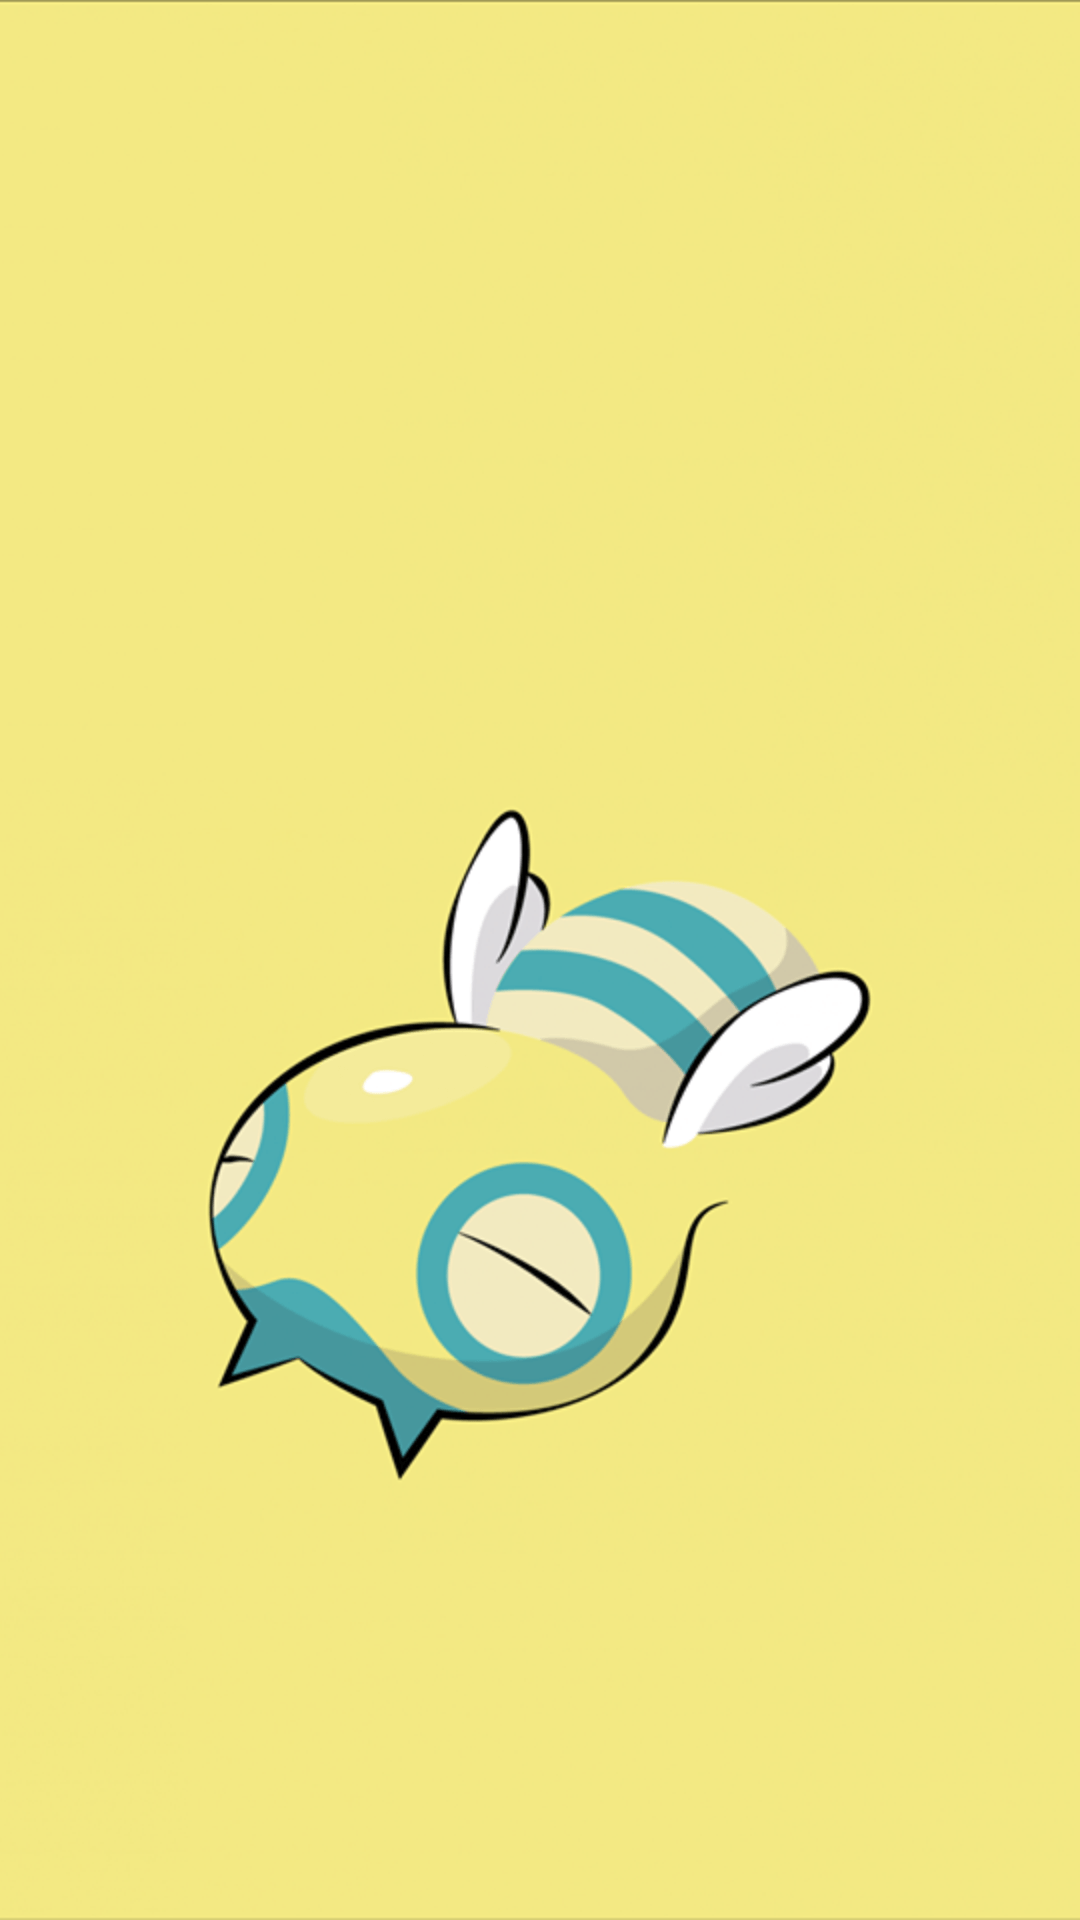 Download Dunsparce 1080 x 1920 Wallpapers